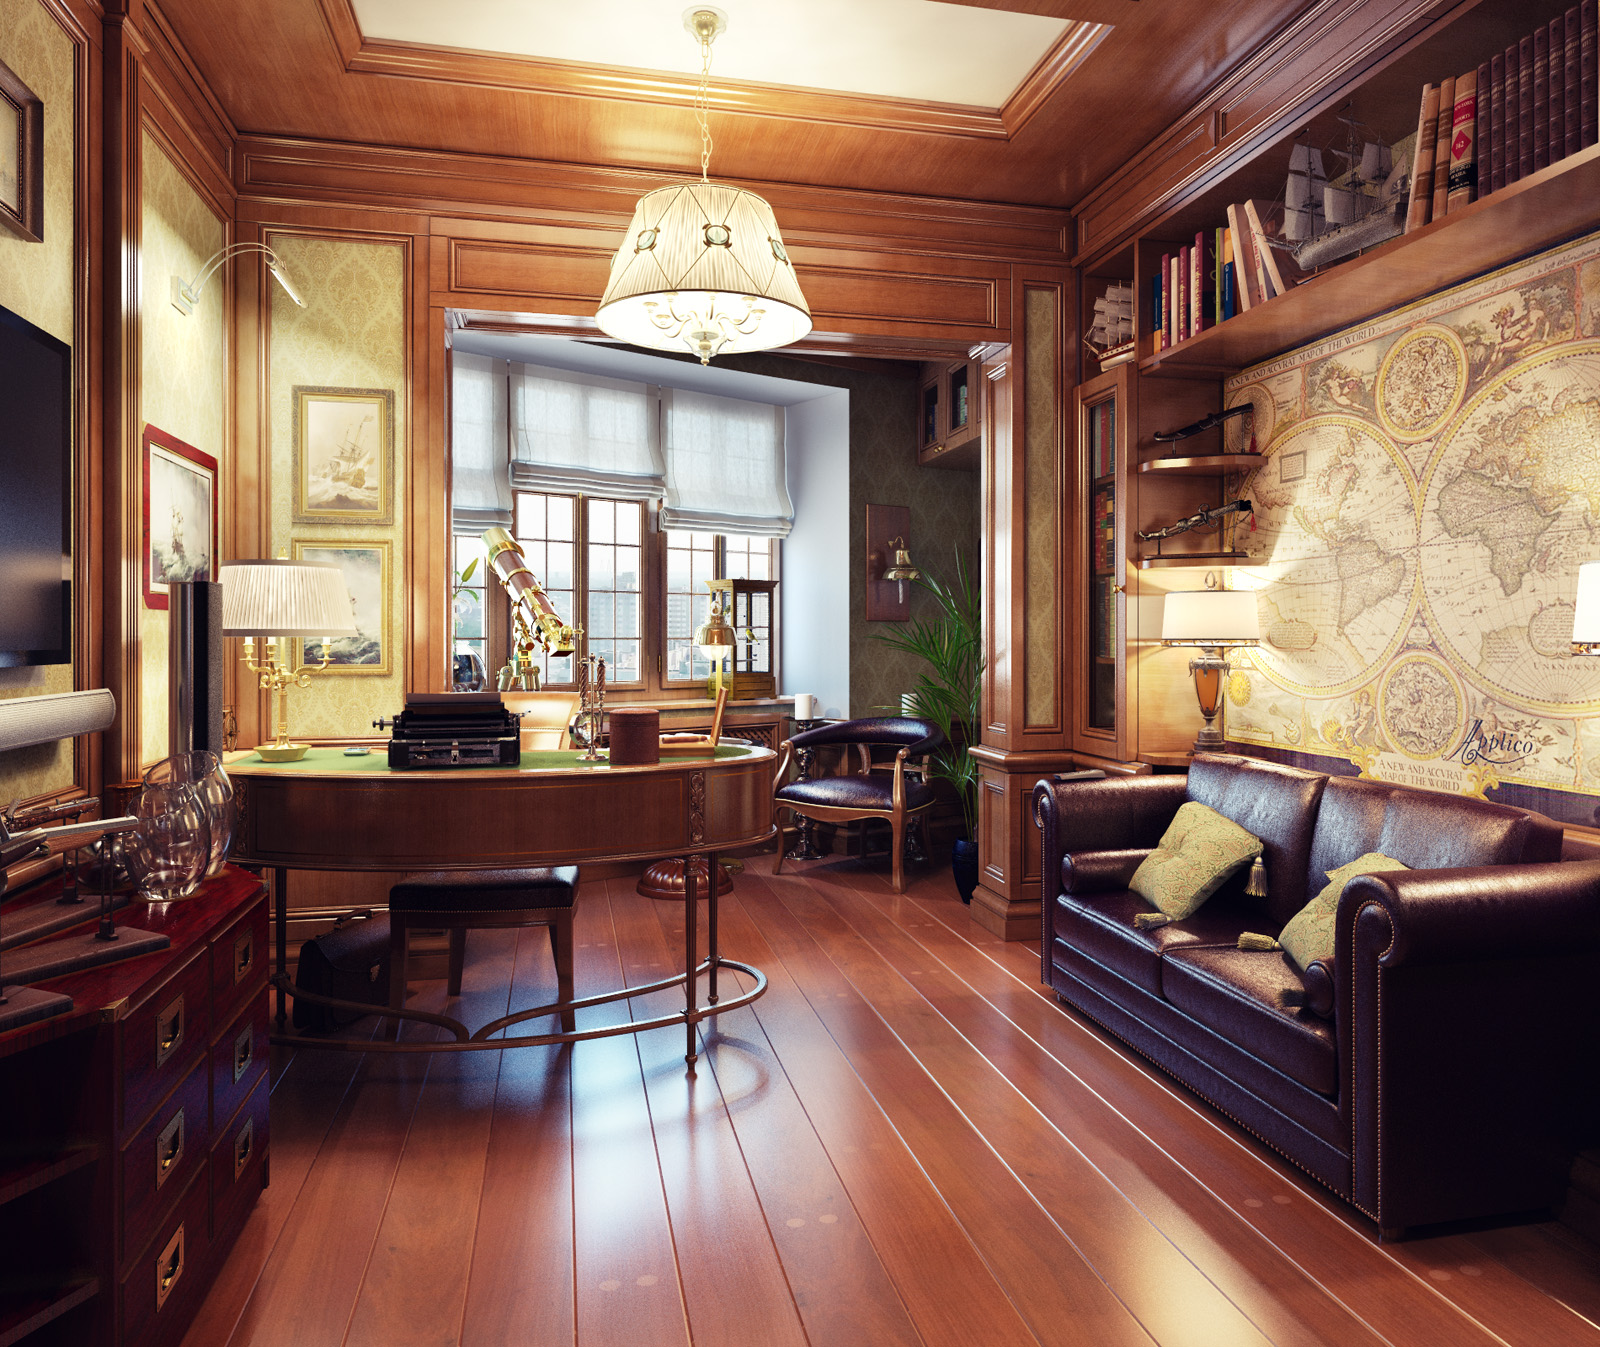 Study area of the house